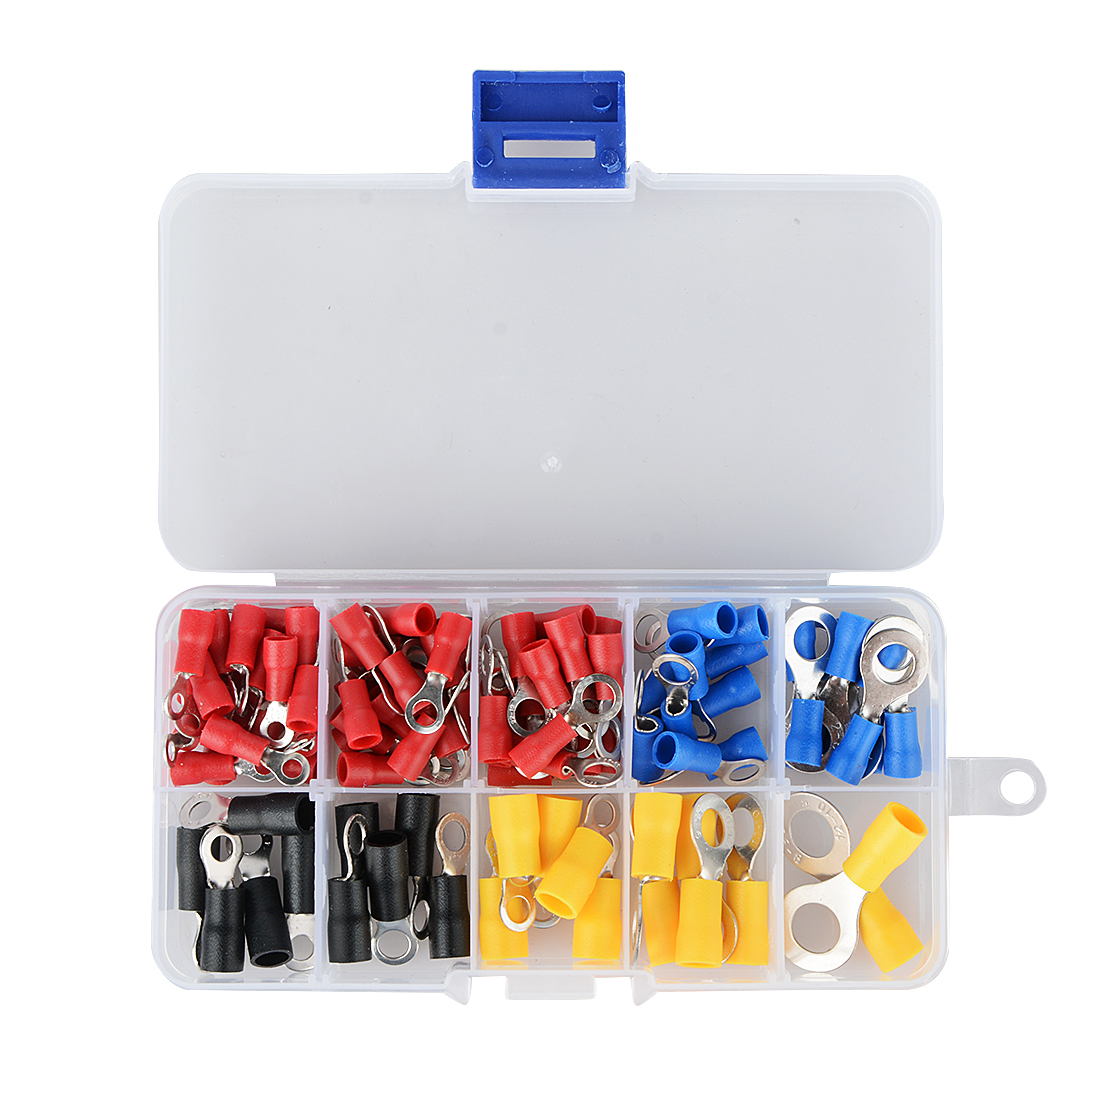 (102 Pcs 10 Arten Rv) Ring Terminal Elektrische Crimp Stecker Kit Set Mit Box, Kupfer Draht Isolierte Cord Pin End Butt